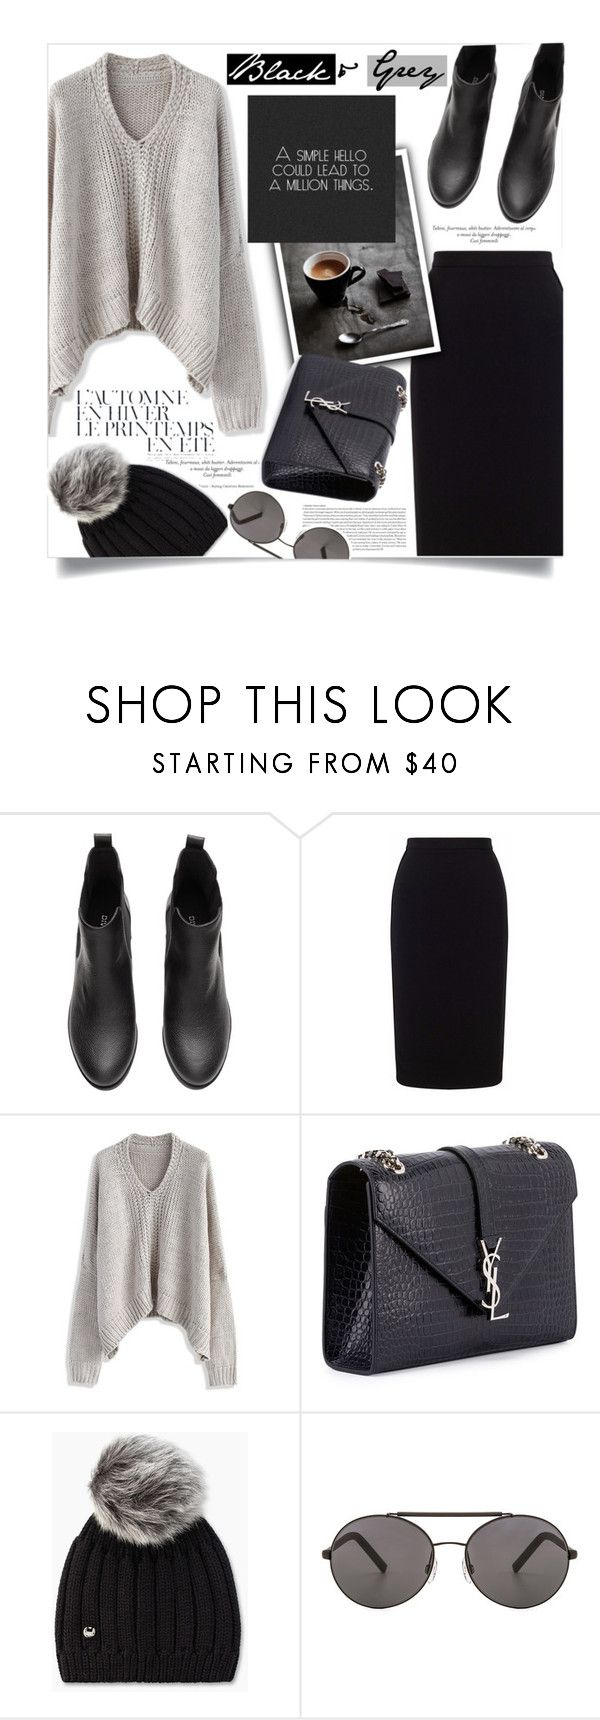 """""""A Simple Hello Could Lead To A Million Things - Black & Grey Contest Entry"""" by yoo-q ❤ liked on Polyvore featuring Roland Mouret, Chicwish, Été Swim, Yves Saint Laurent, UGG, Seafolly, StreetStyle, contestentry, BlackAndGrey and fallsweater"""